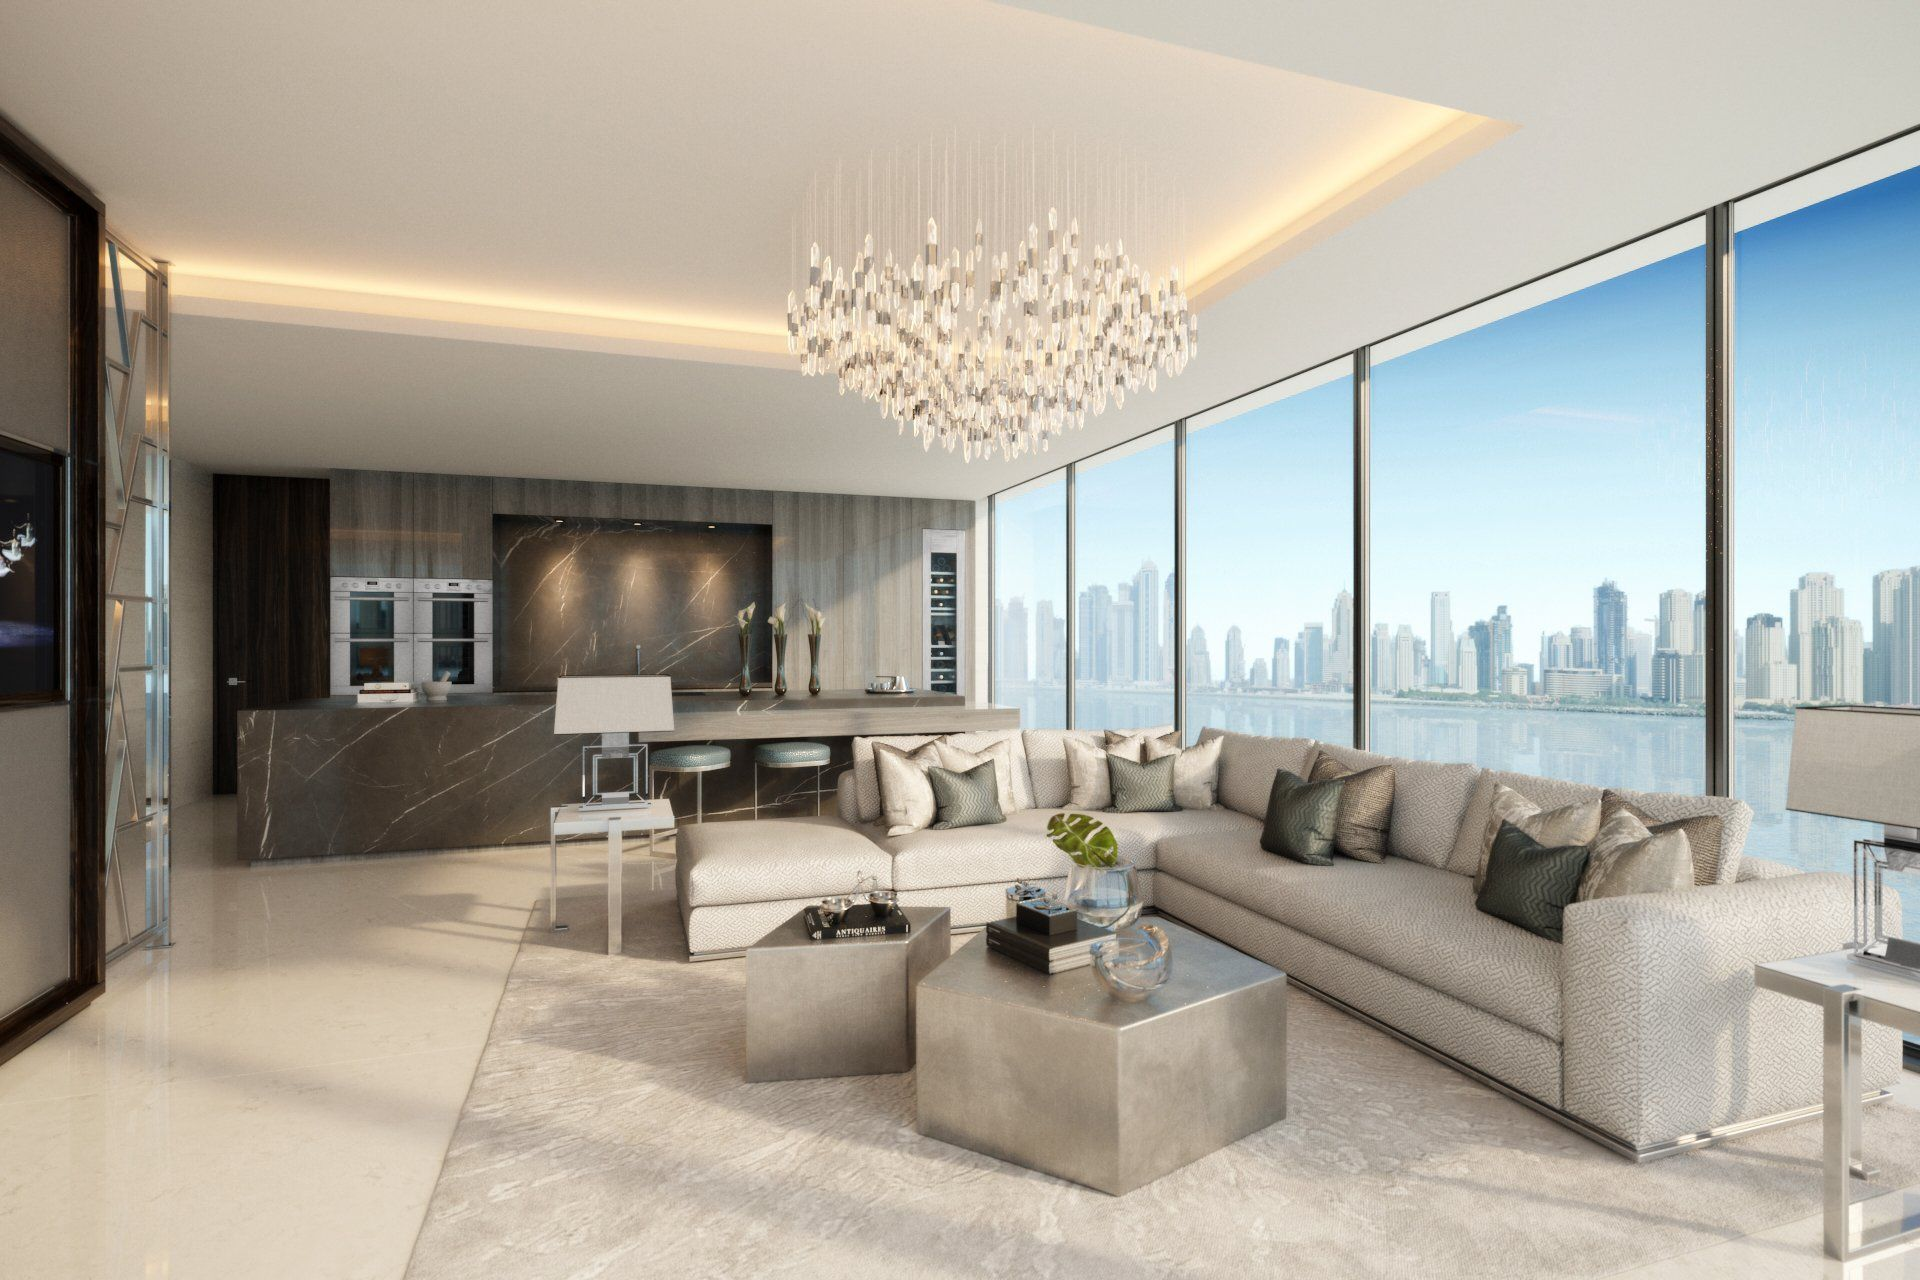 Living room design in contemporary style dubai luxury development dubai luxury development palm jumeirah